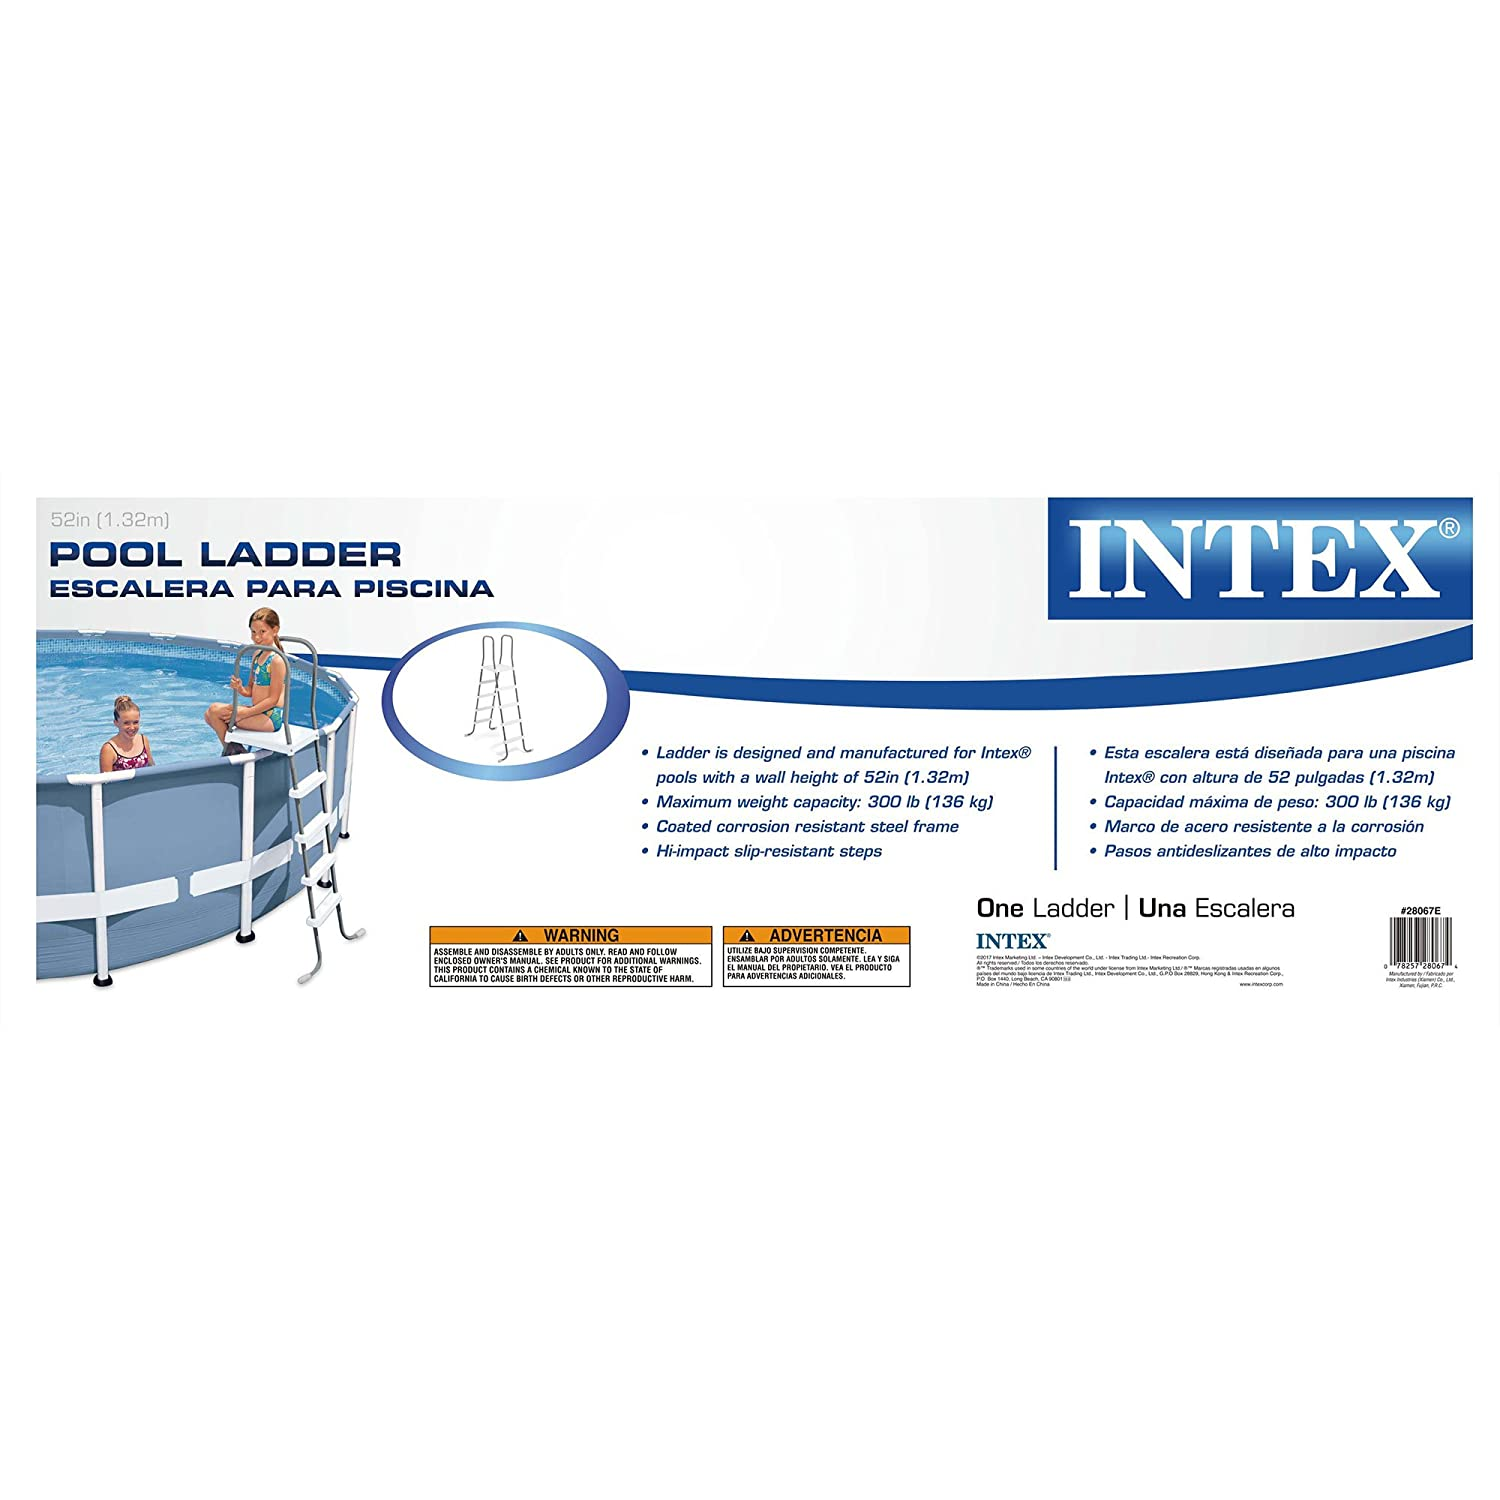 Asombroso Intex 24 X 52 Piscina Diseño Ultra Bandera - Ideas ...